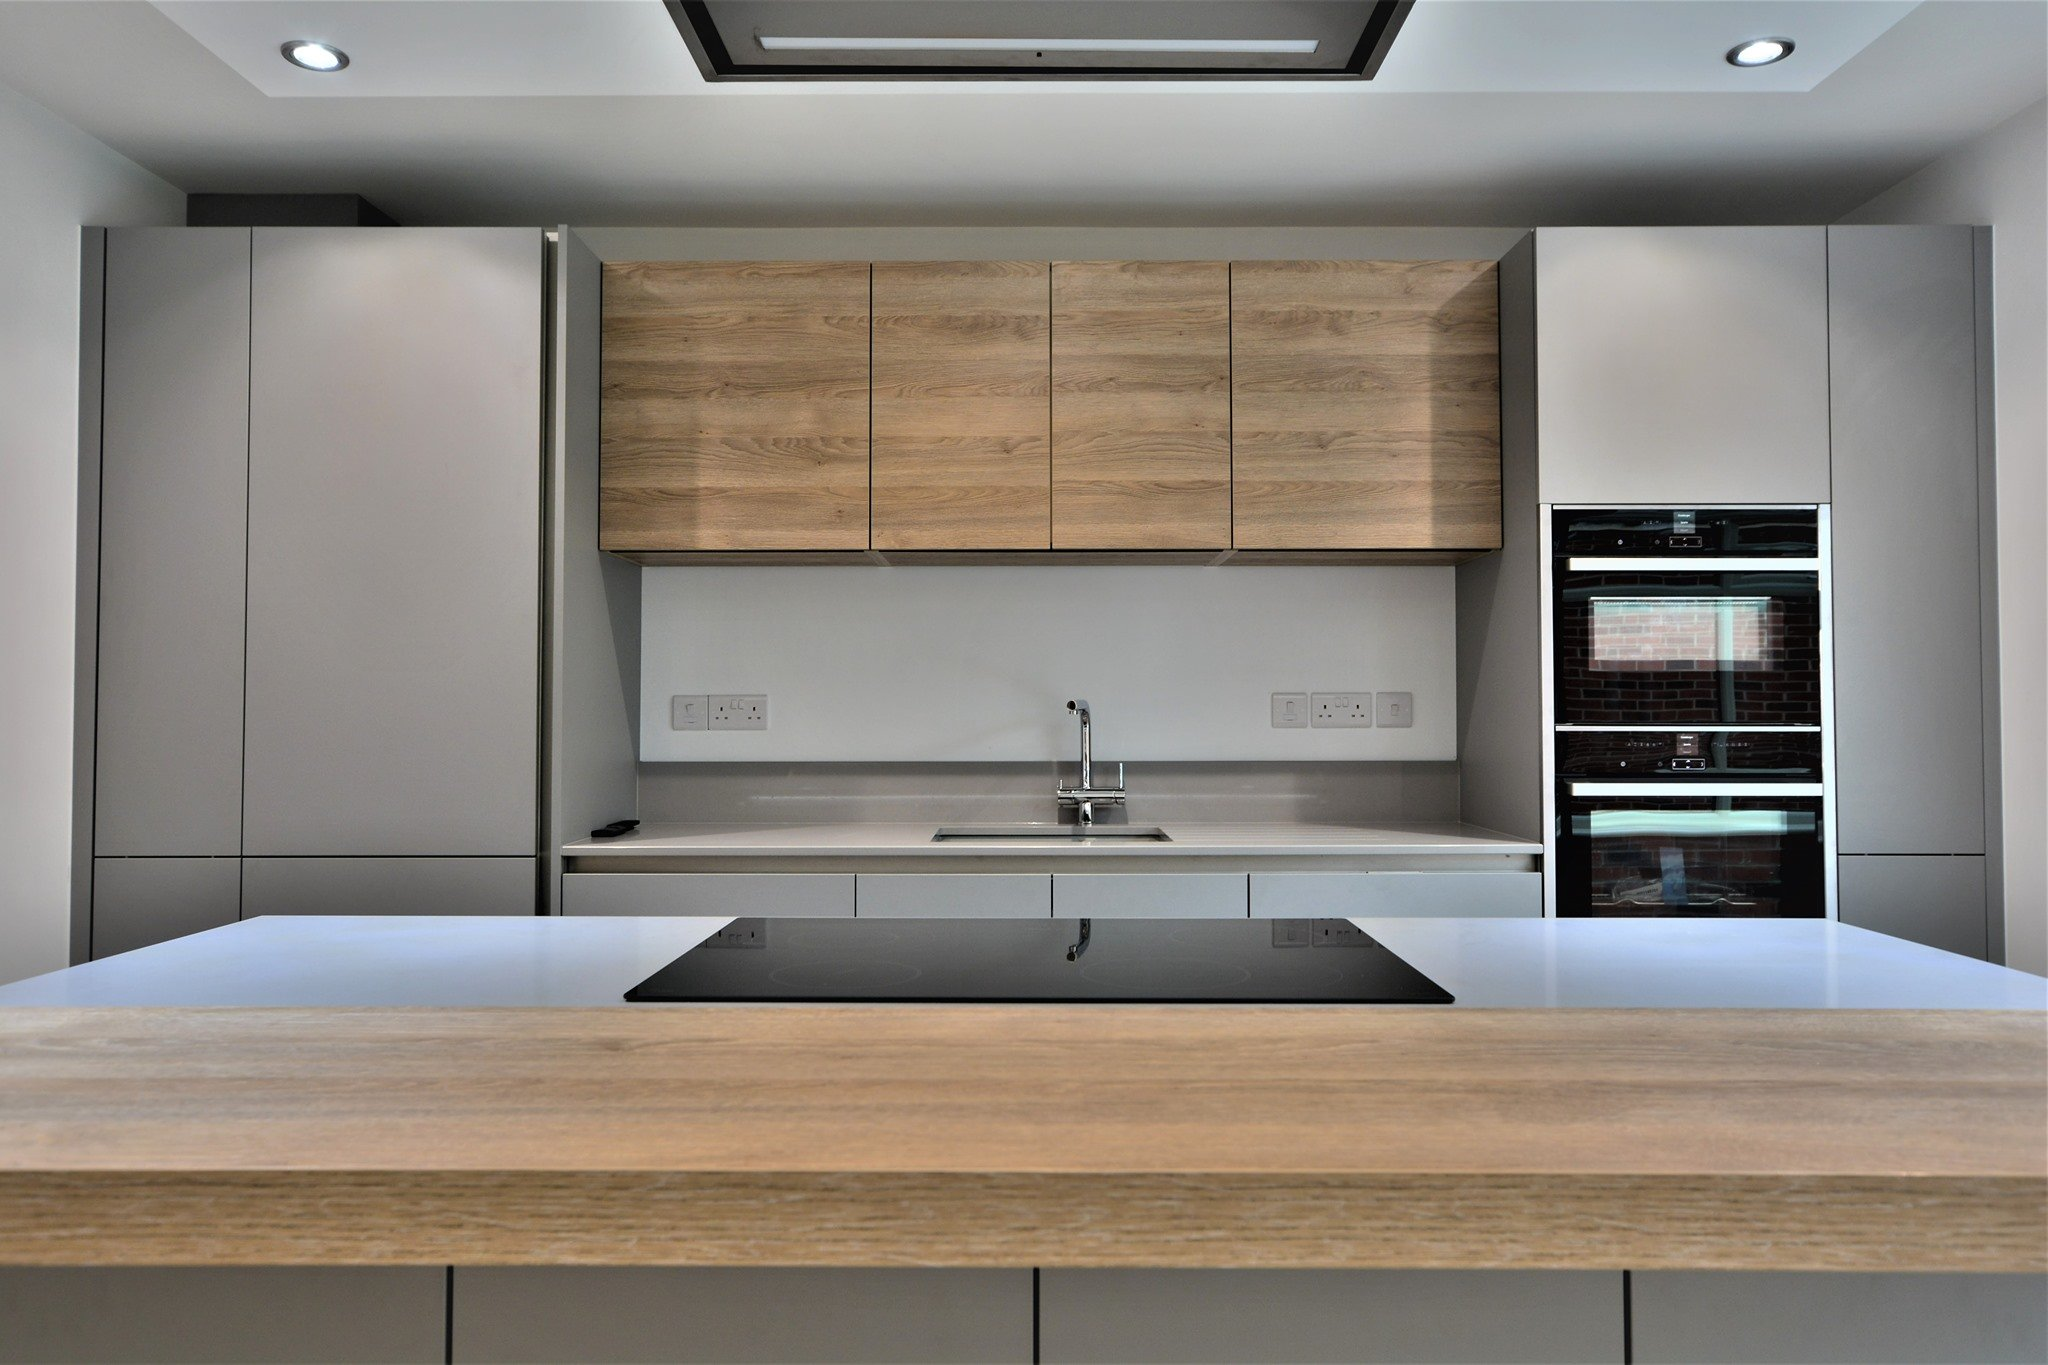 Matt grey and natural wood are classic combinations